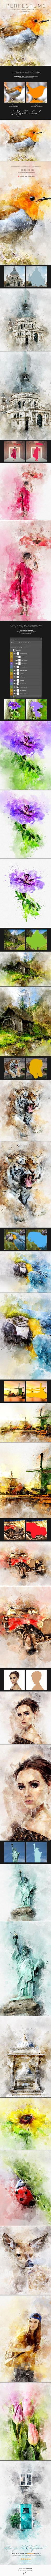 Perfectum 2 - Watercolor Artist #Photoshop #Action - Photo Effects Actions Download here:  https://graphicriver.net/item/perfectum-2-watercolor-artist-photoshop-action/19501970?ref=alena994